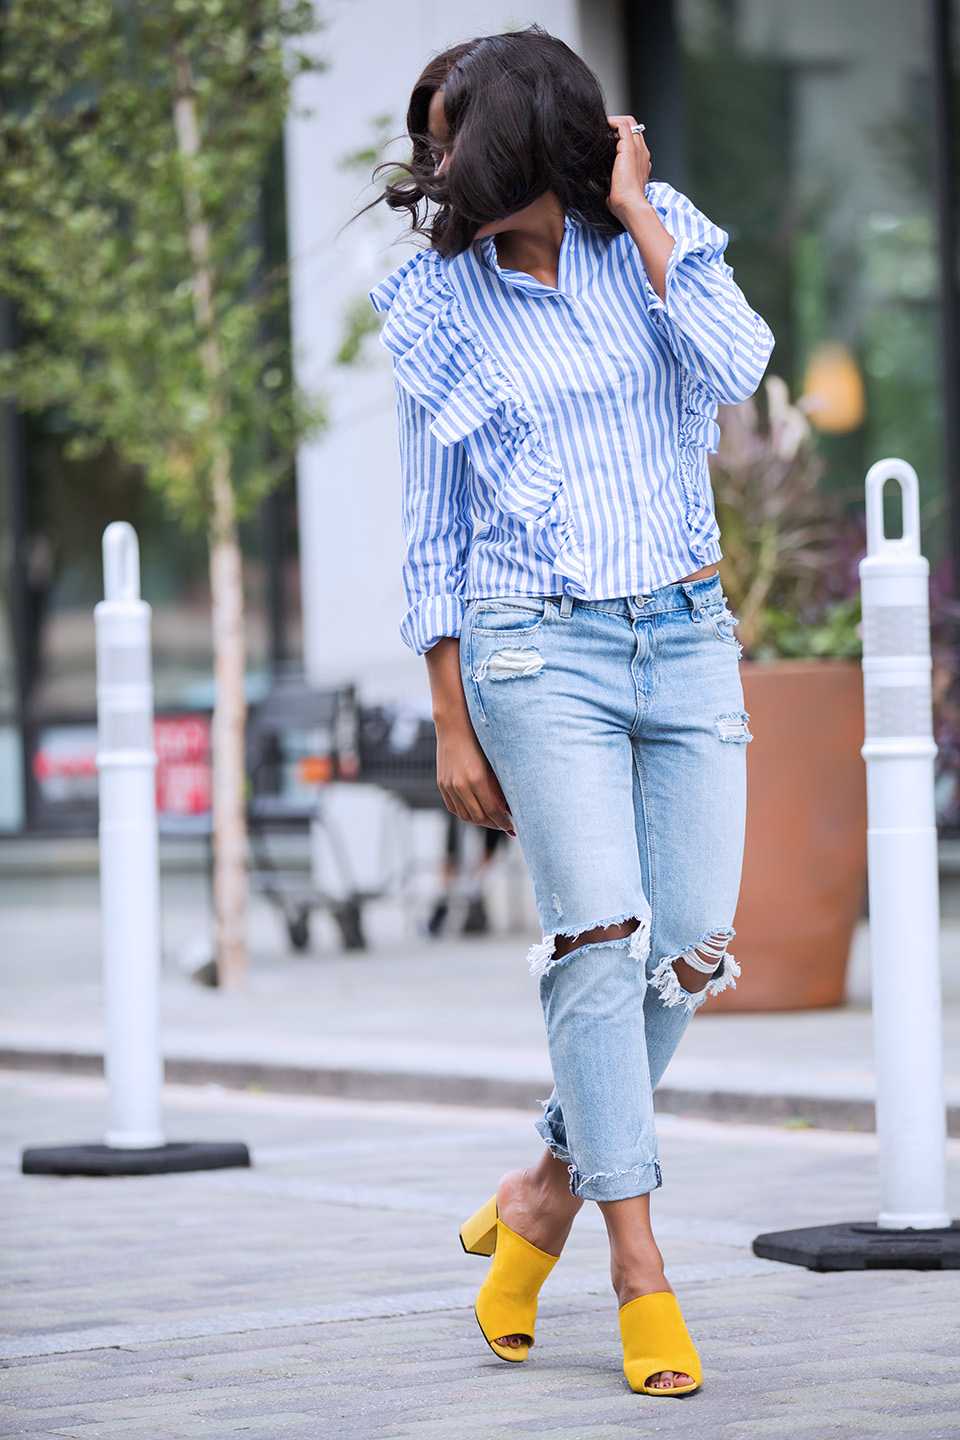 HM ruffle blouse, express girlfriend jeans, topshop mules, www.jadore-fashion.com